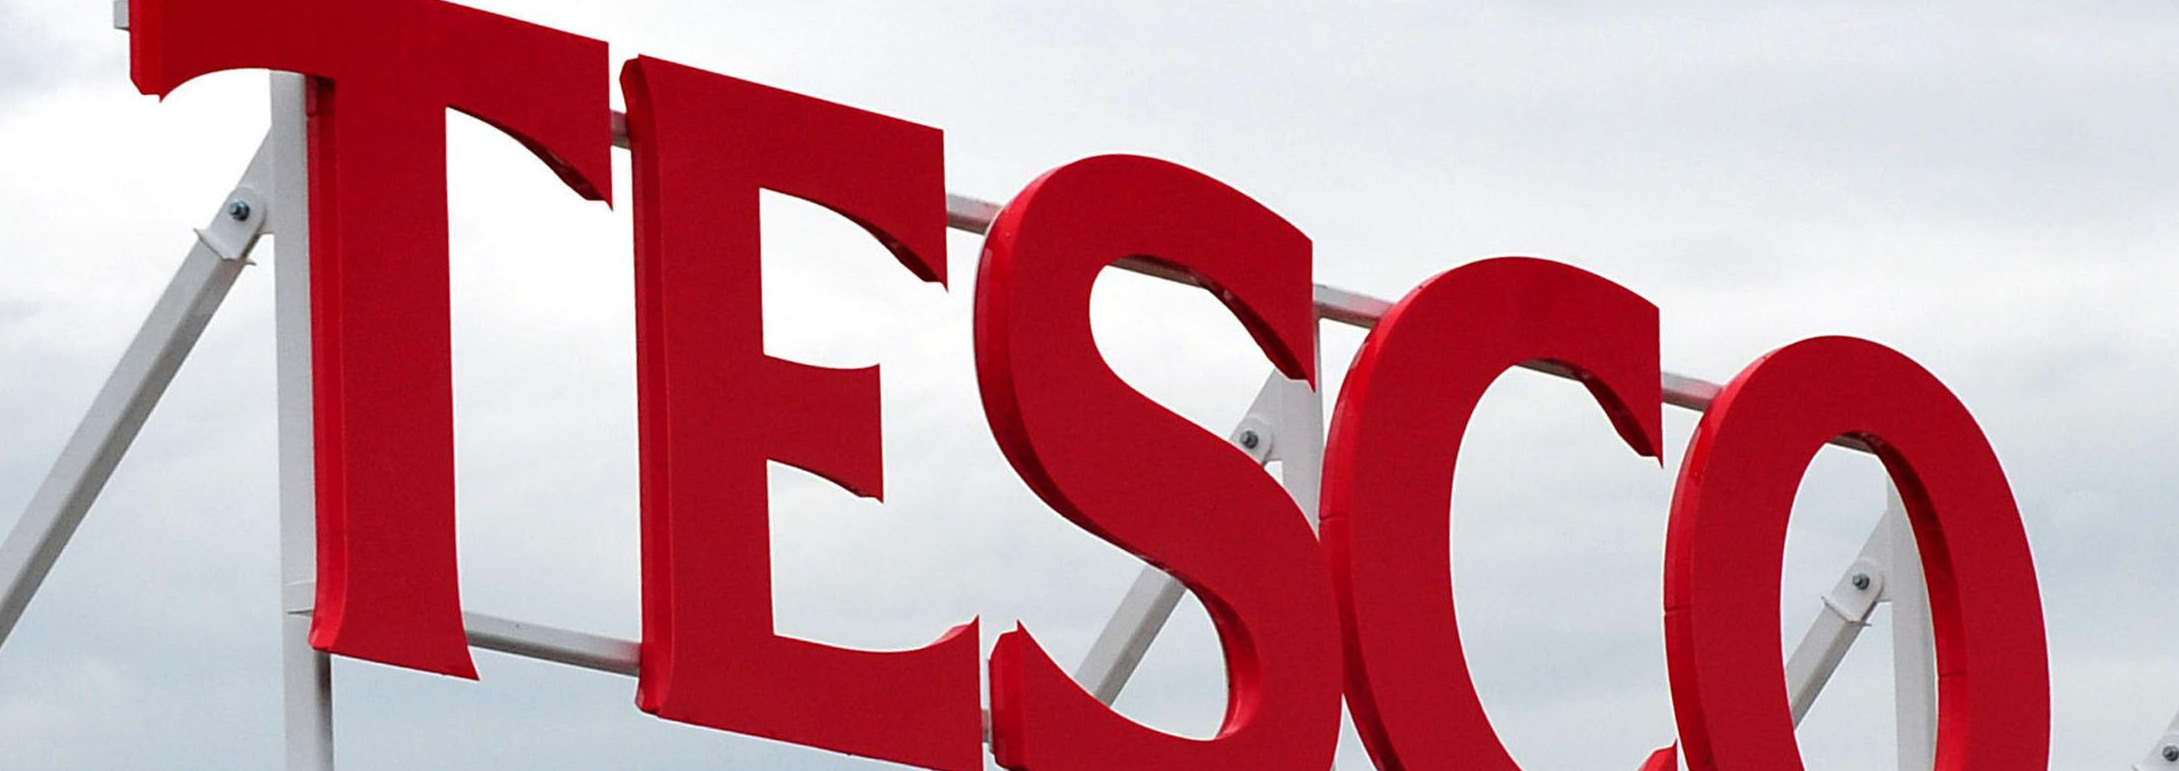 tesco redundancy policy Buy redundancy: the law and practice from our employment & labour law general range at tesco direct we stock a great range of products at everyday prices clubcard points on every order.